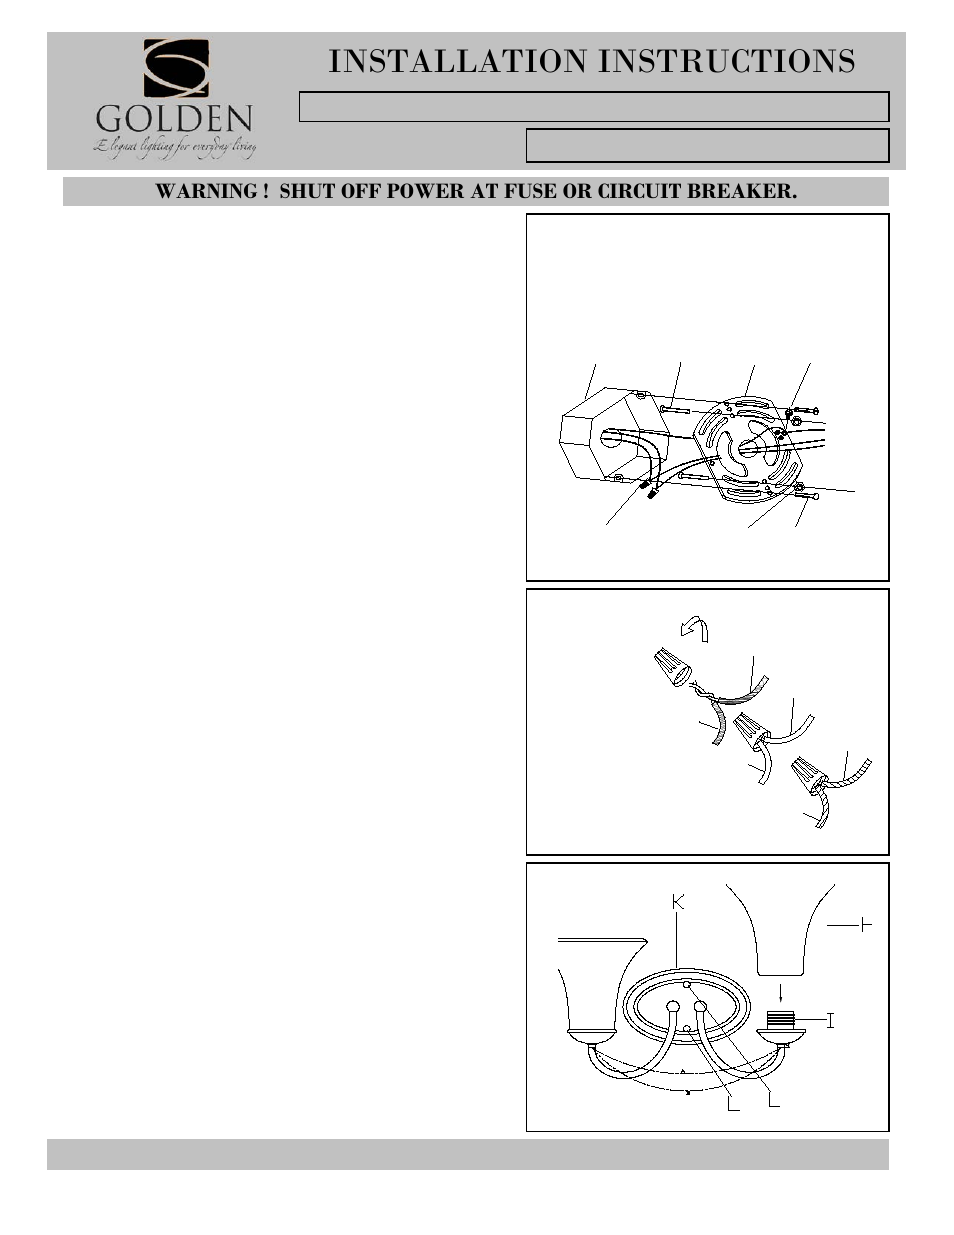 Golden Lighting 7644 Ba2 Ga User Manual 2 Pages Recently Removed The Wire Nuts On Two Lights Controlled By